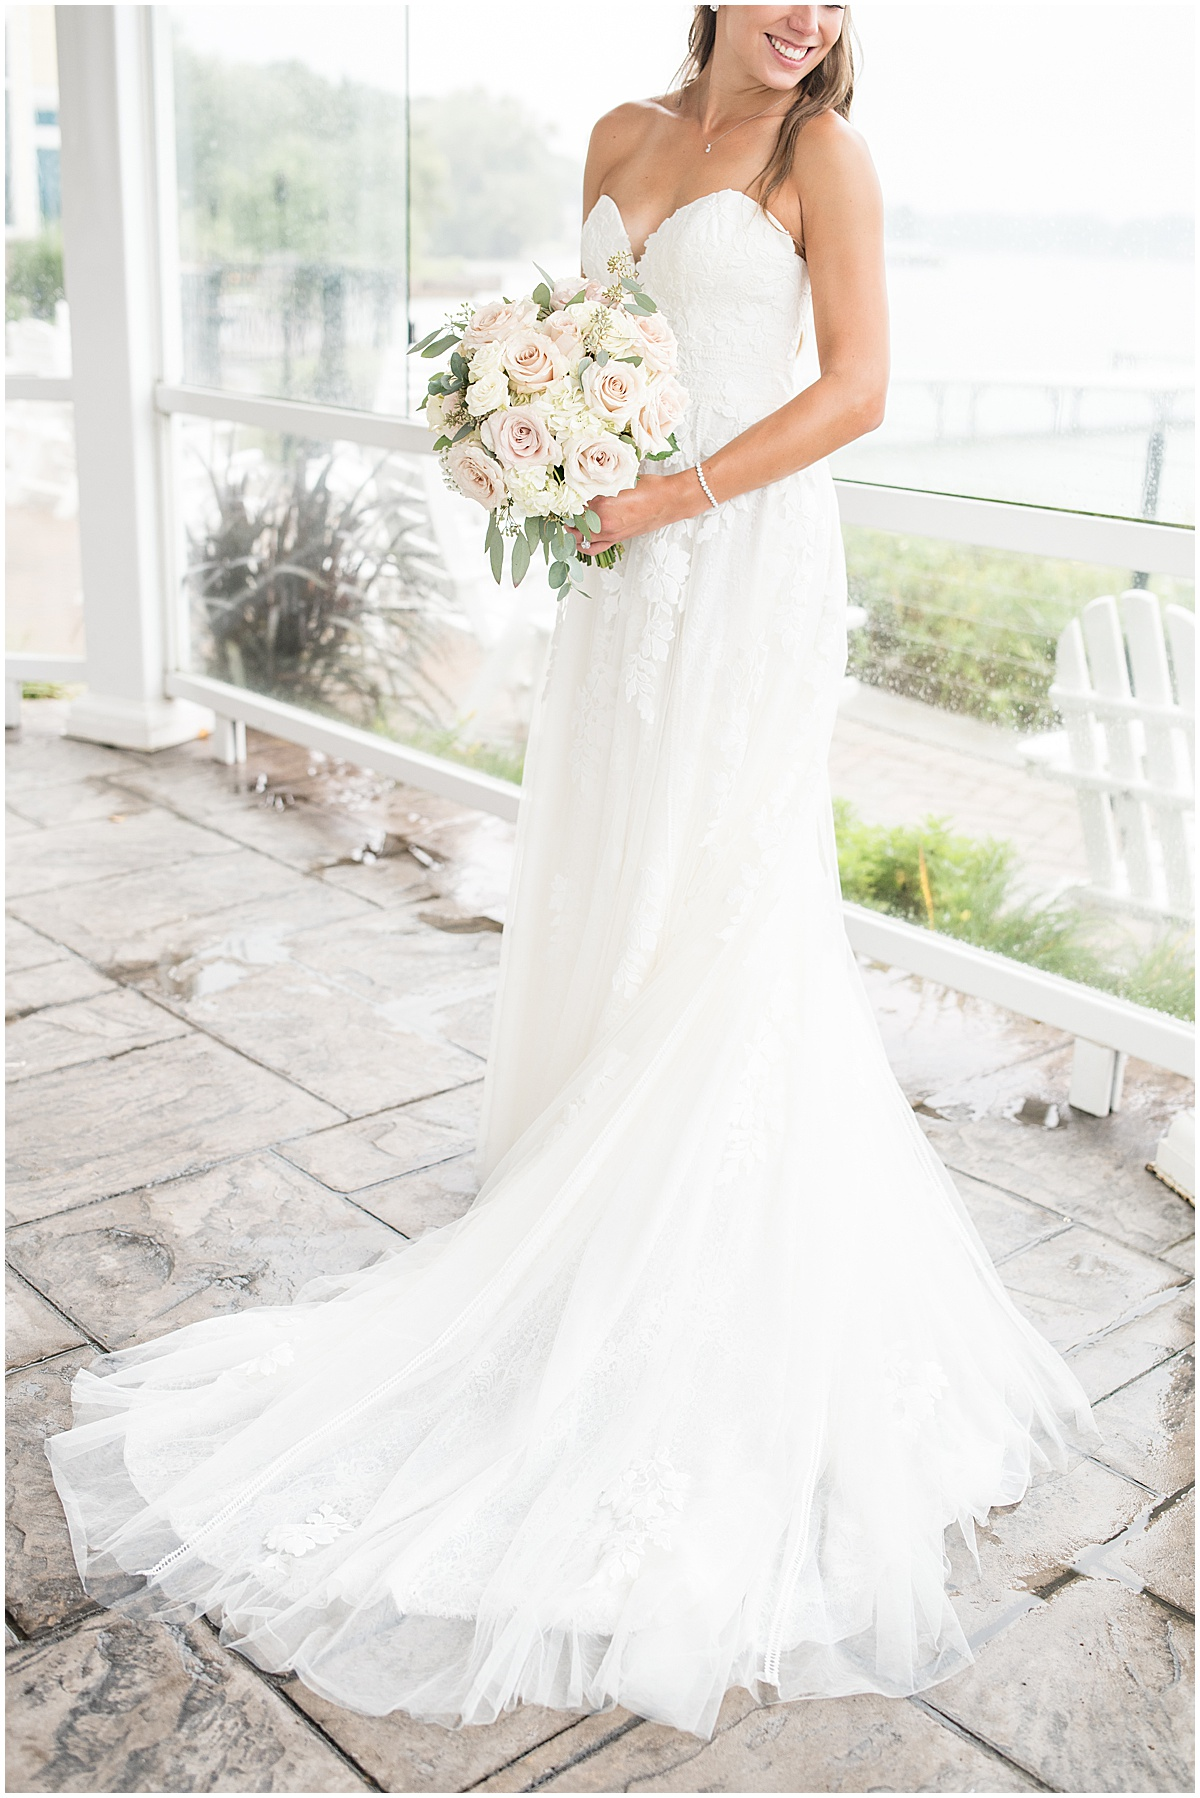 Bridal portrait prior to wedding at the Lighthouse Restaurant in Cedar Lake, Indiana